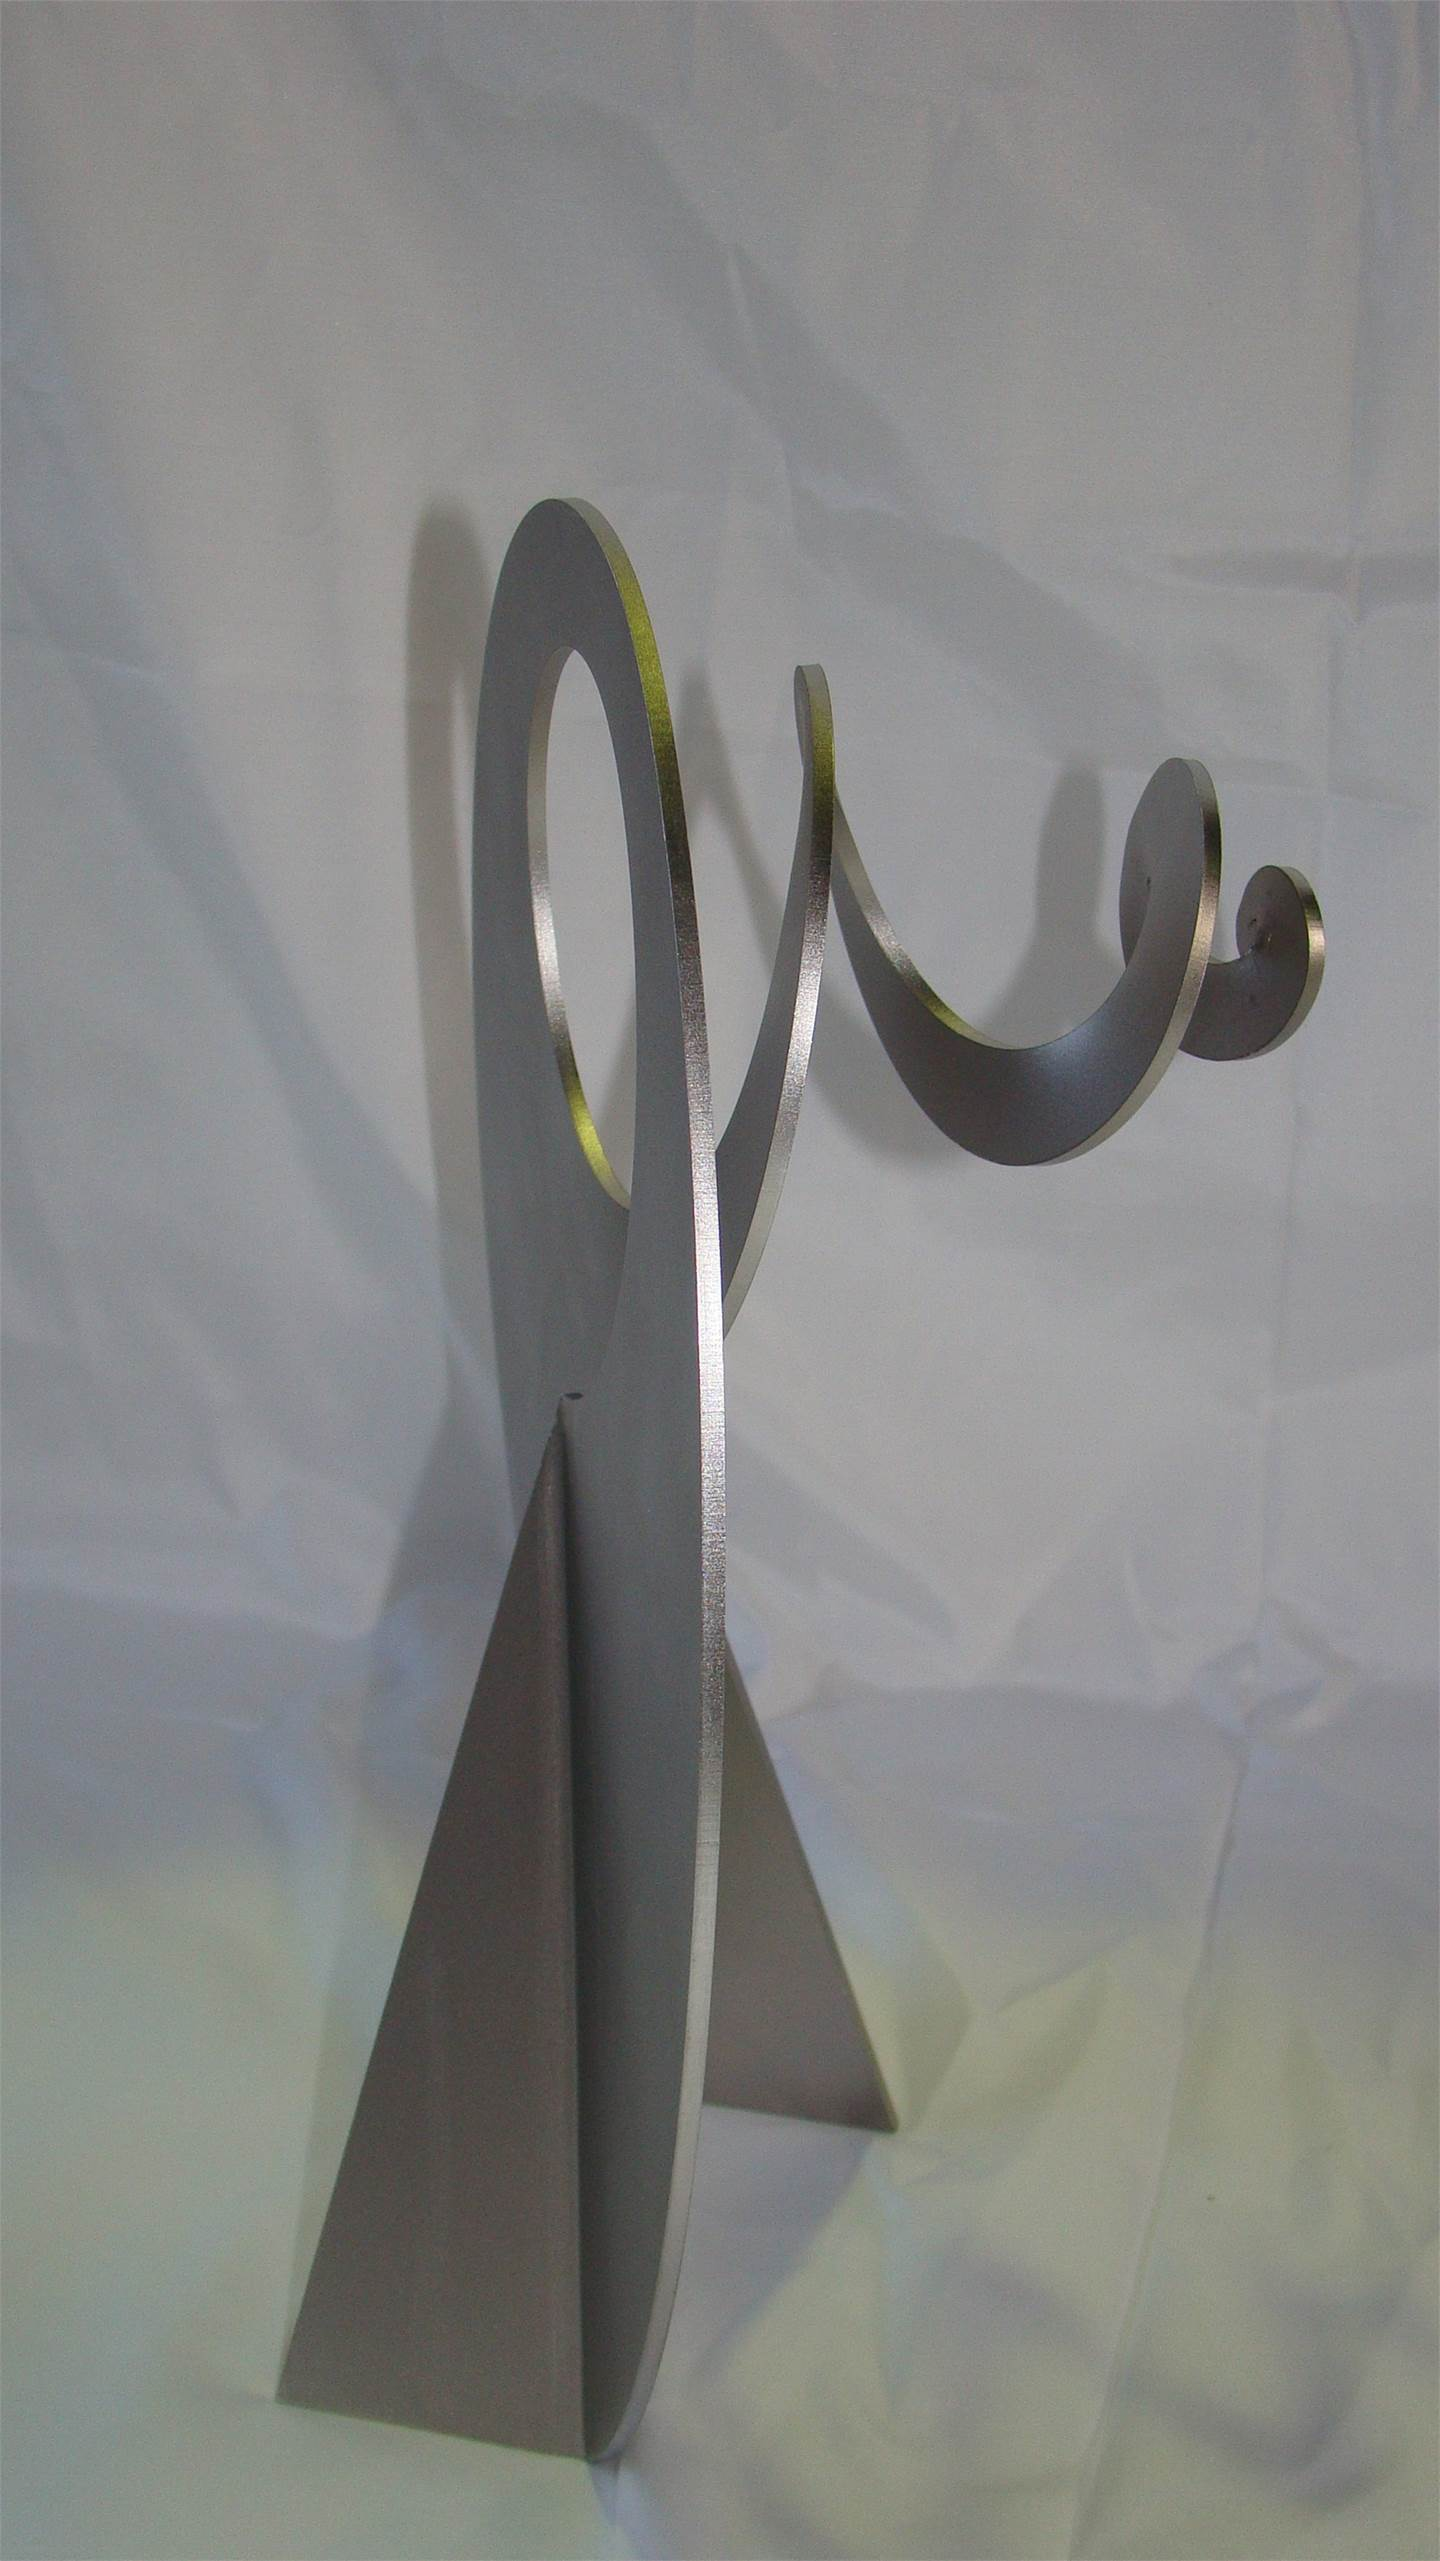 Carrapicho ó vento mareiro, original Abstract Metal Sculpture by Juan Coruxo